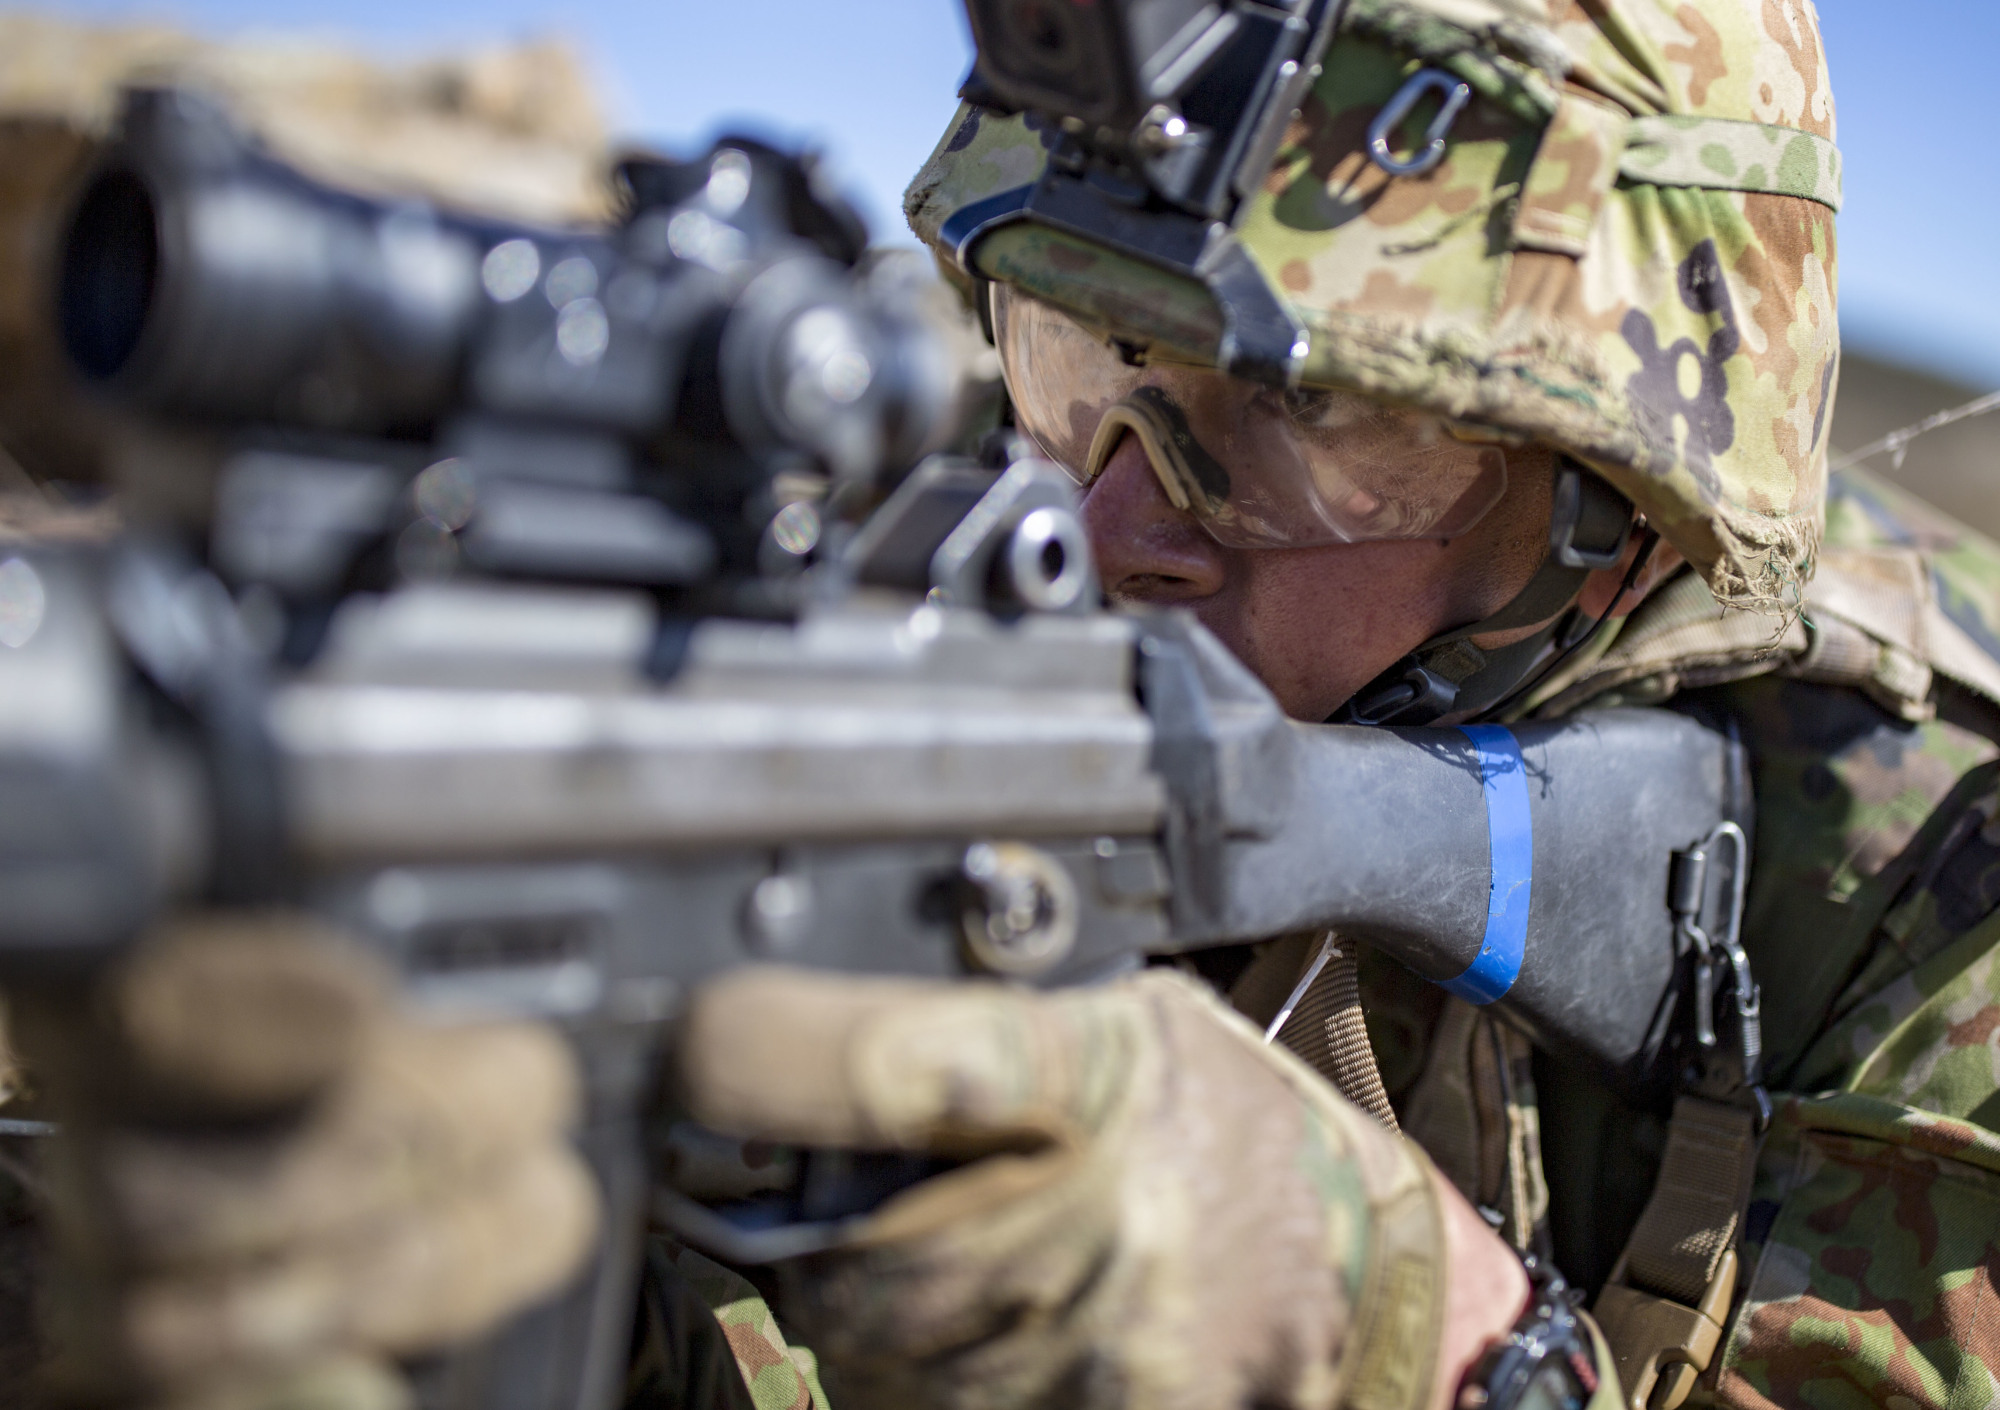 A Ground Self-Defense Force member aims his Howa Type 89 assault rifle during live-fire training during exercise Iron Fist 2018 on Jan. 26 at U.S. Marine Corps Base Camp Pendleton in California. | 11TH MARINE EXPEDITIONARY UNIT